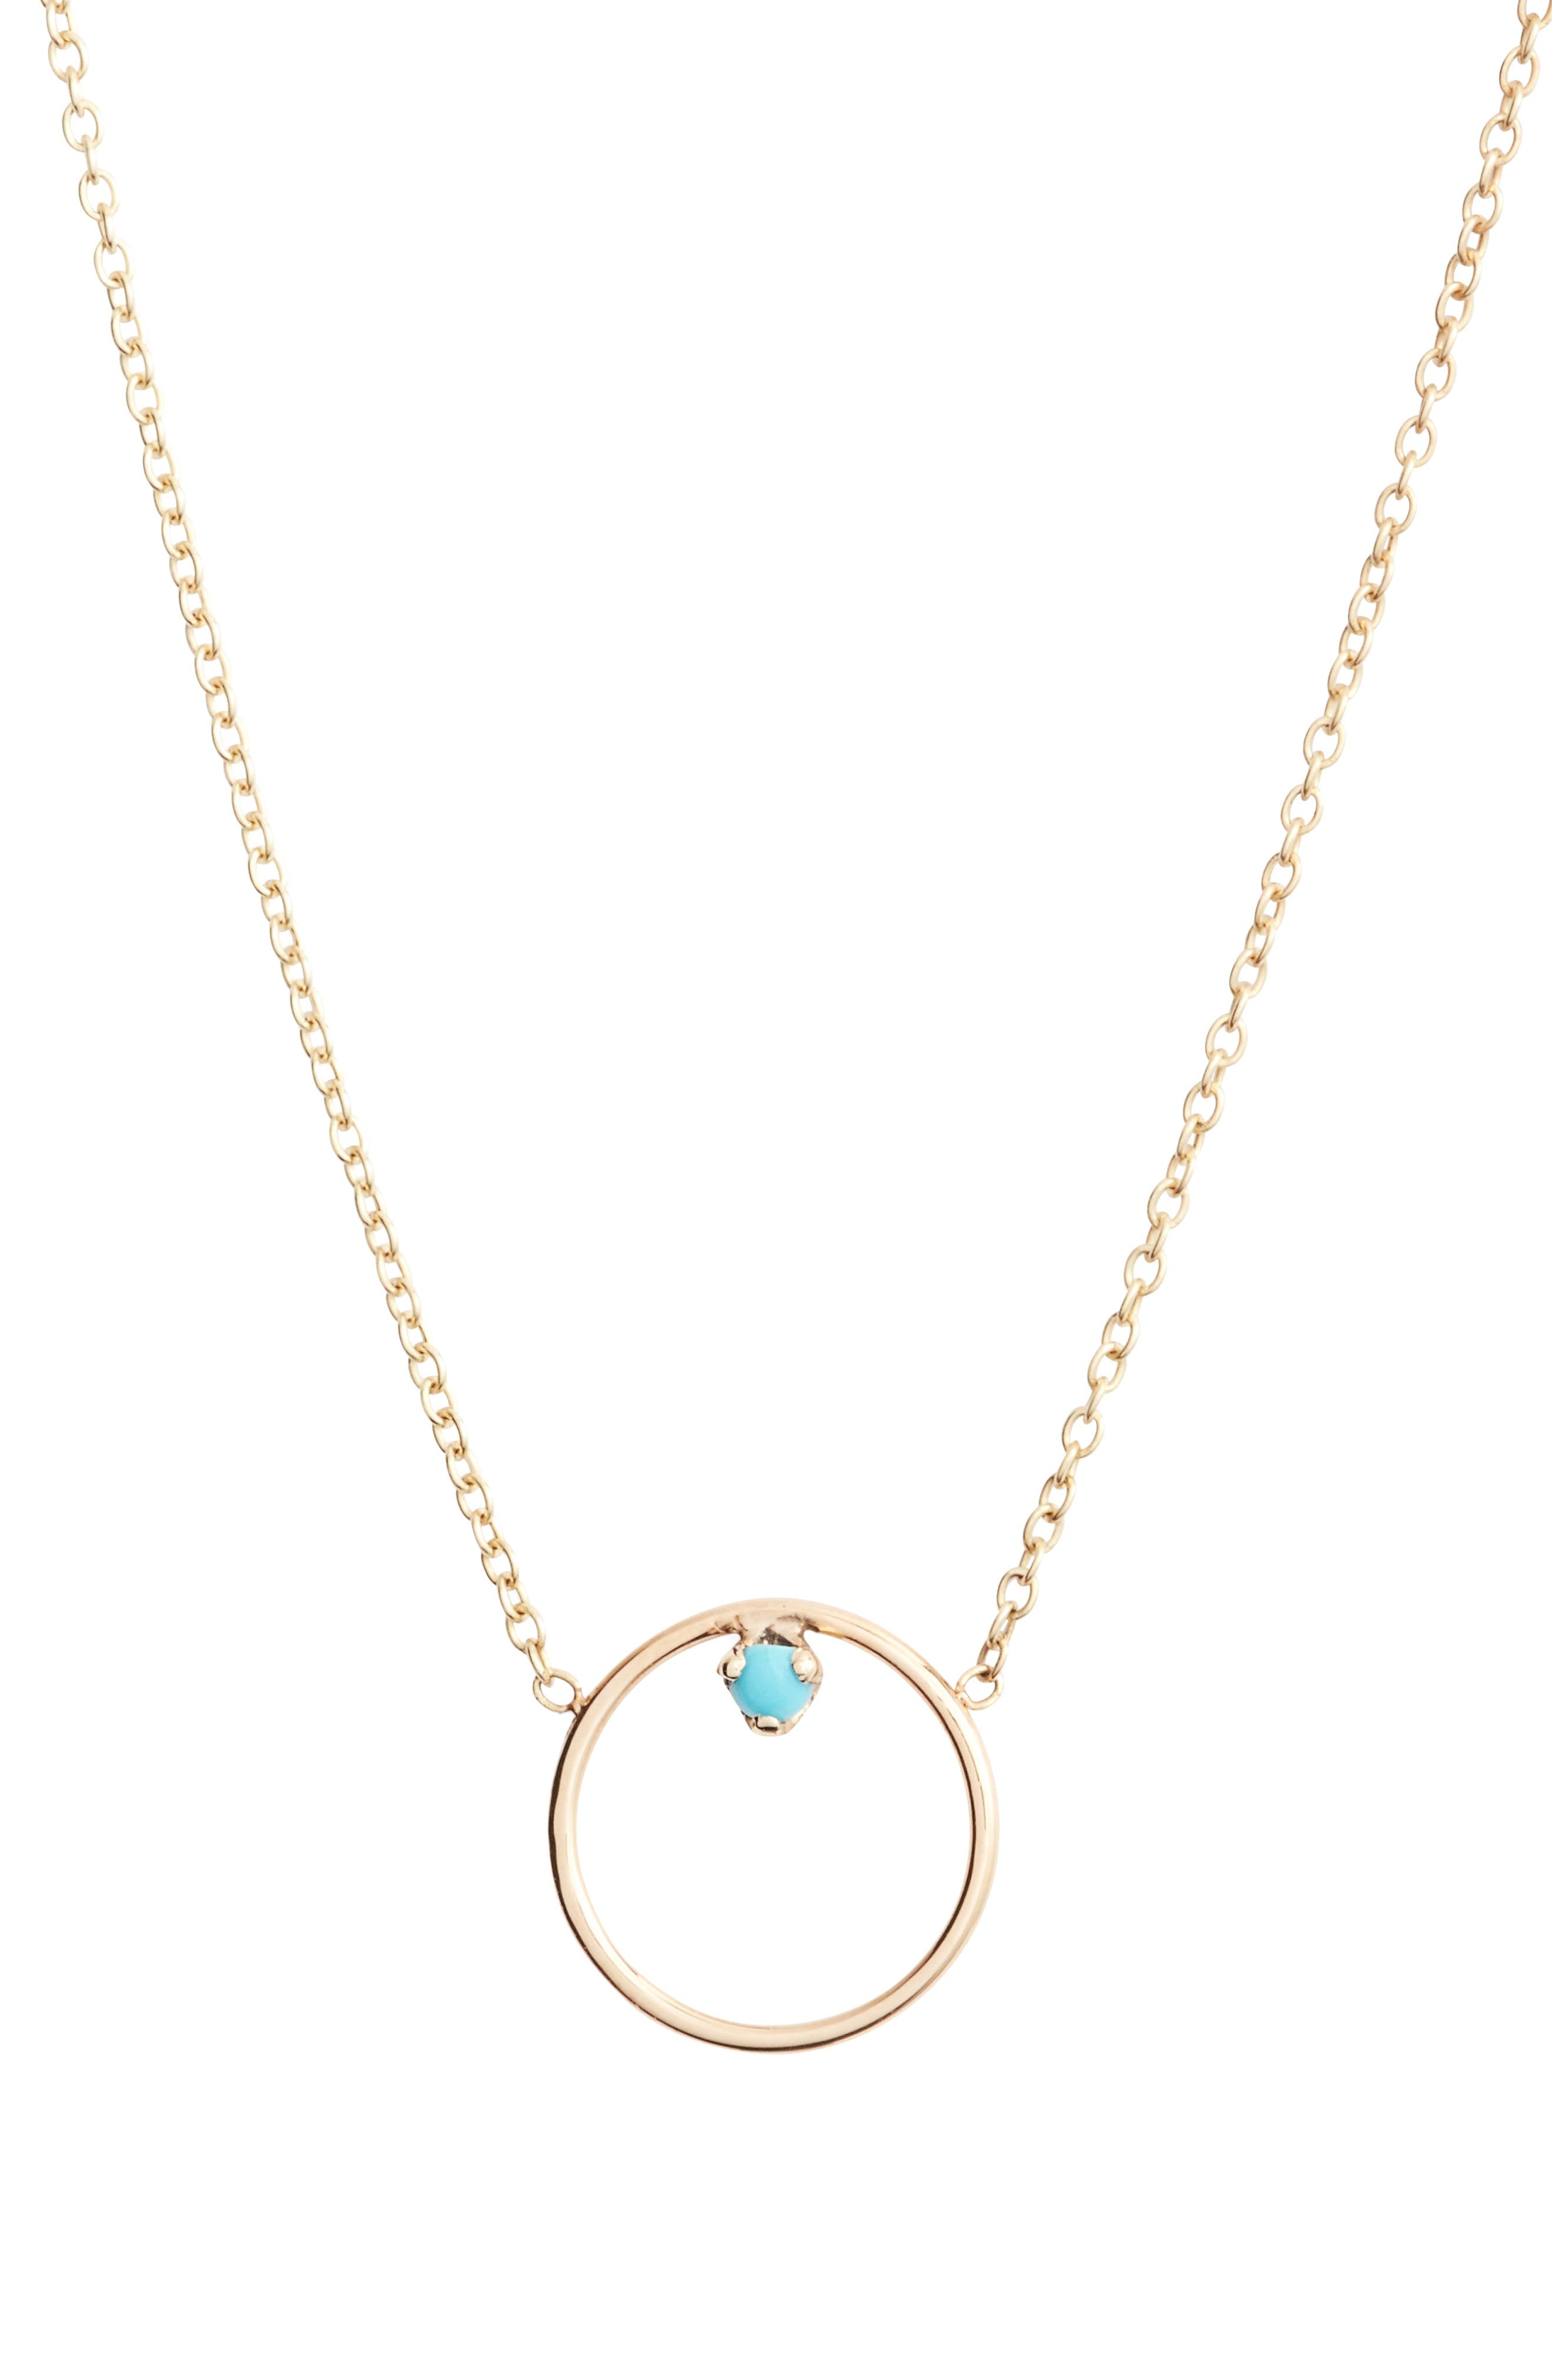 Alternate Image 1 Selected - Zoë Chicco Turquoise Circle Pendant Necklace